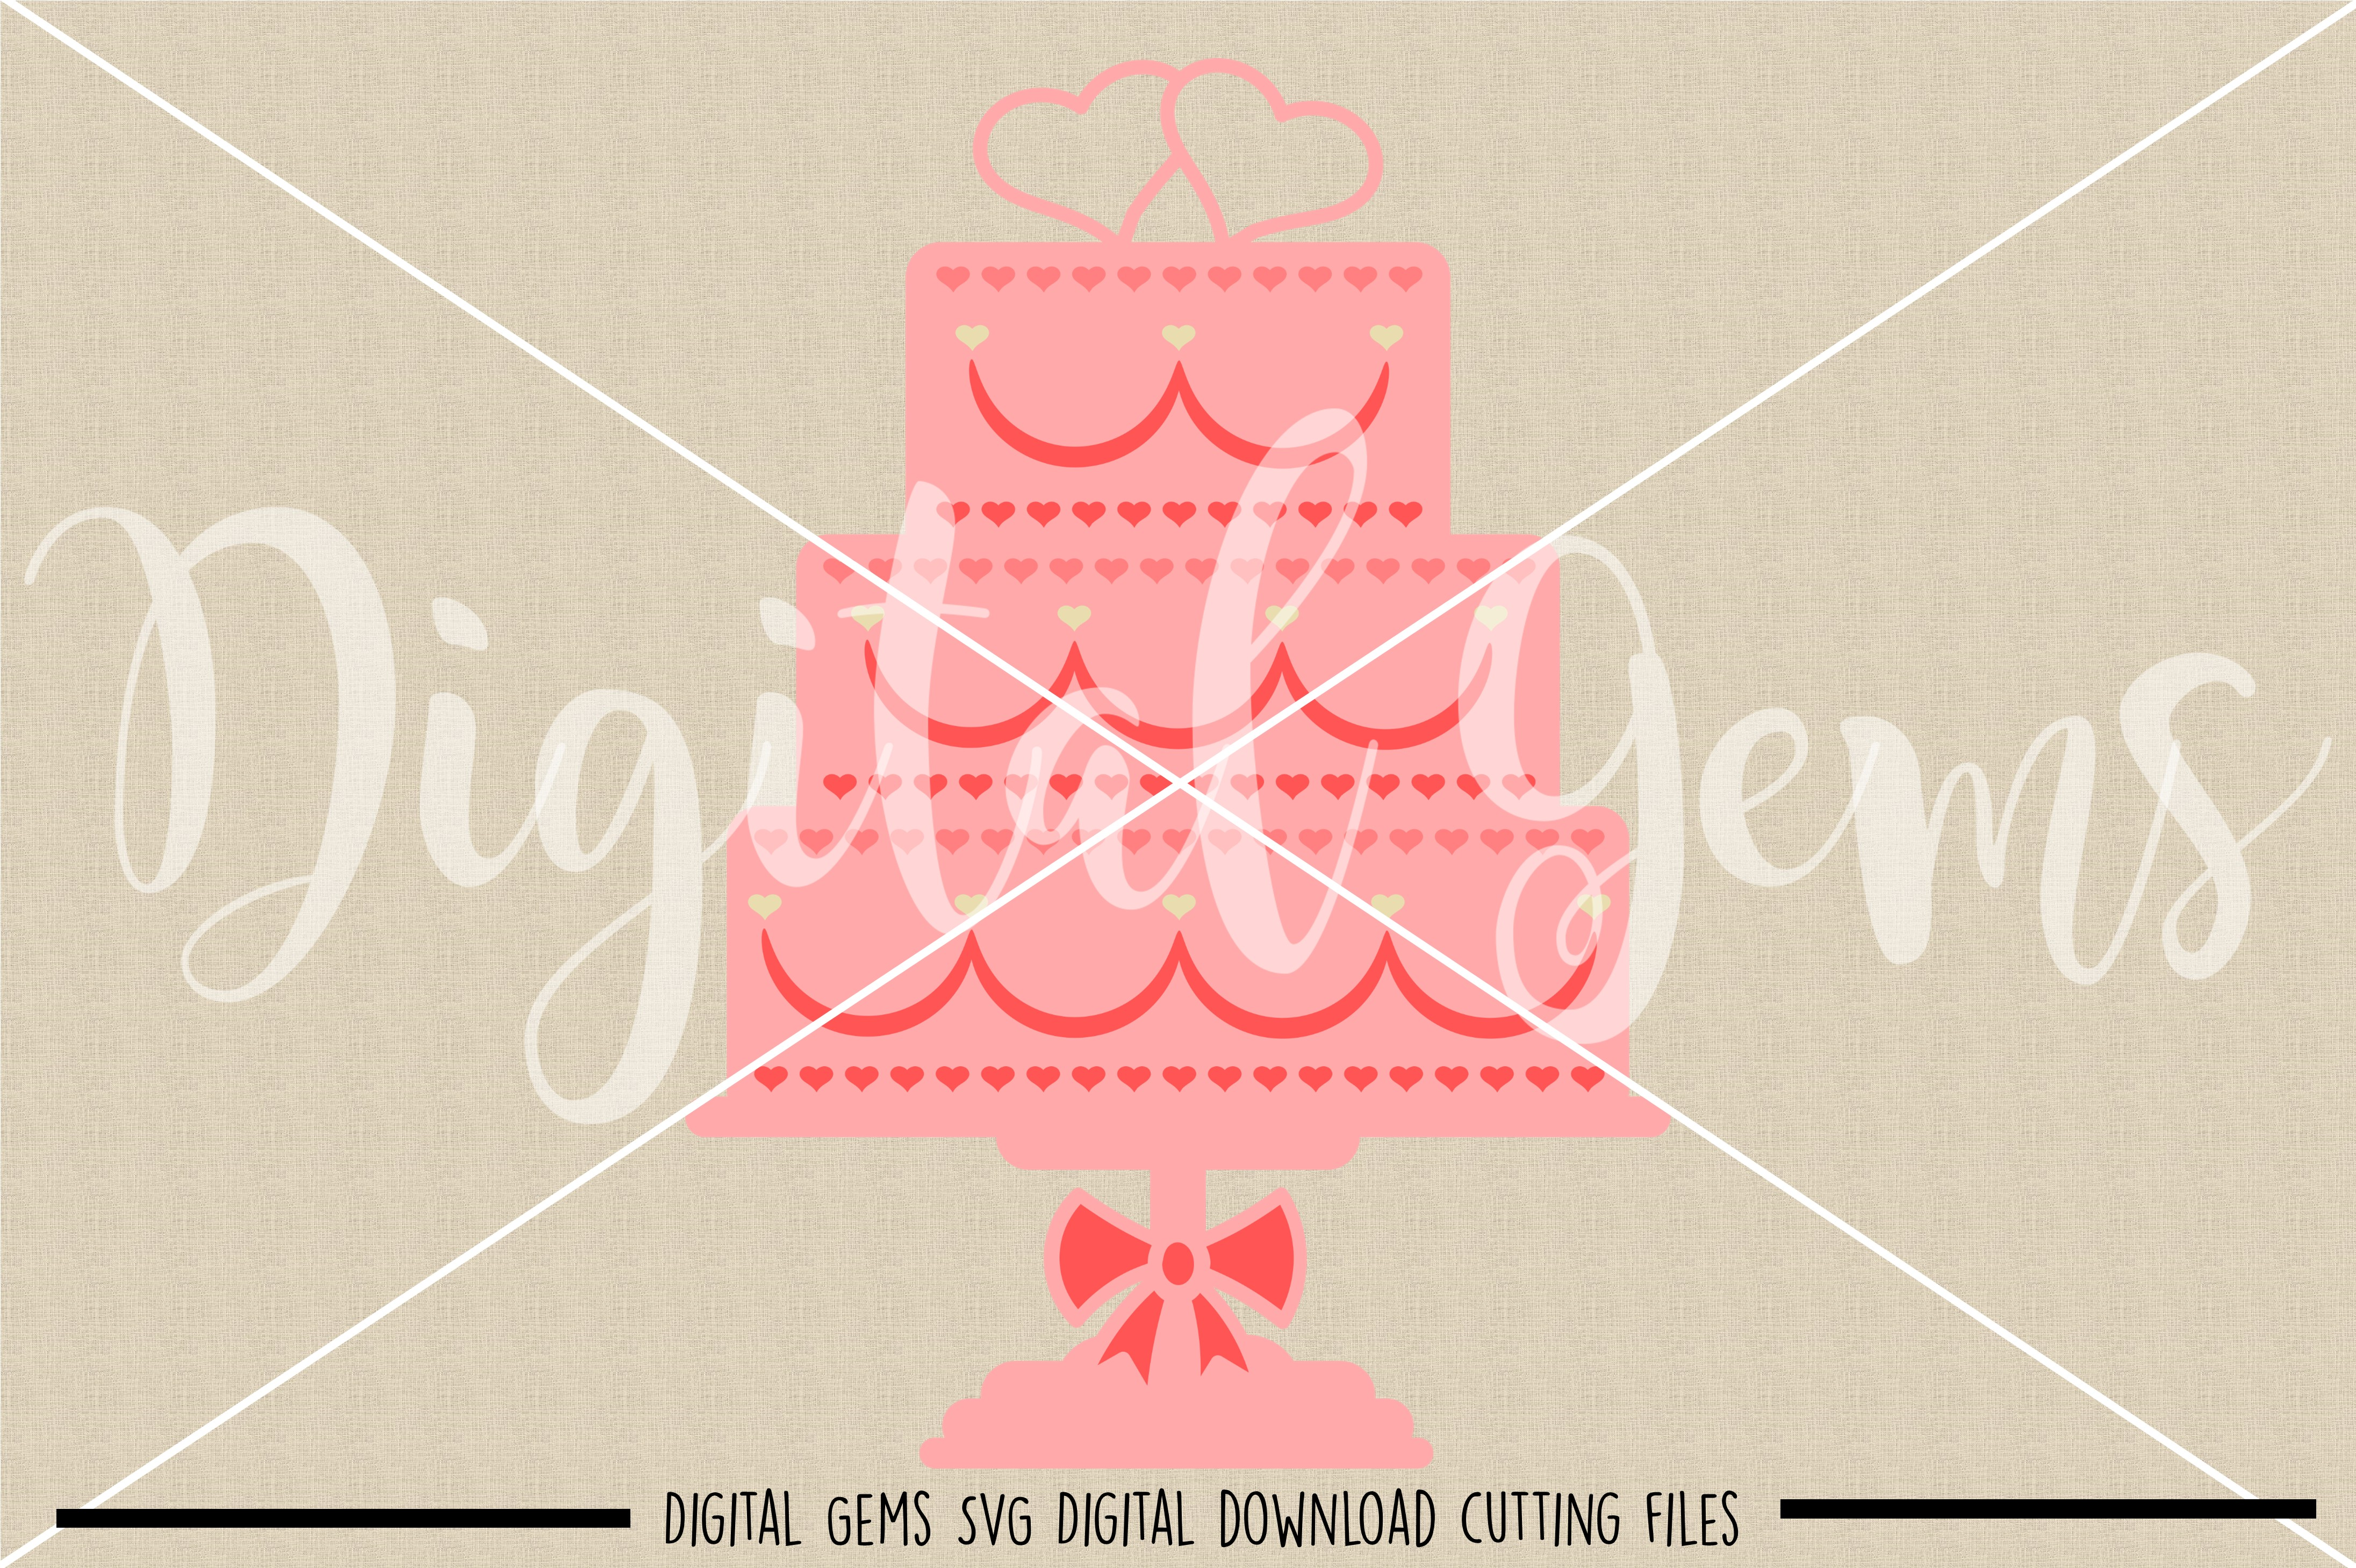 Wedding cake SVG / PNG / EPS / DXF Files example image 2